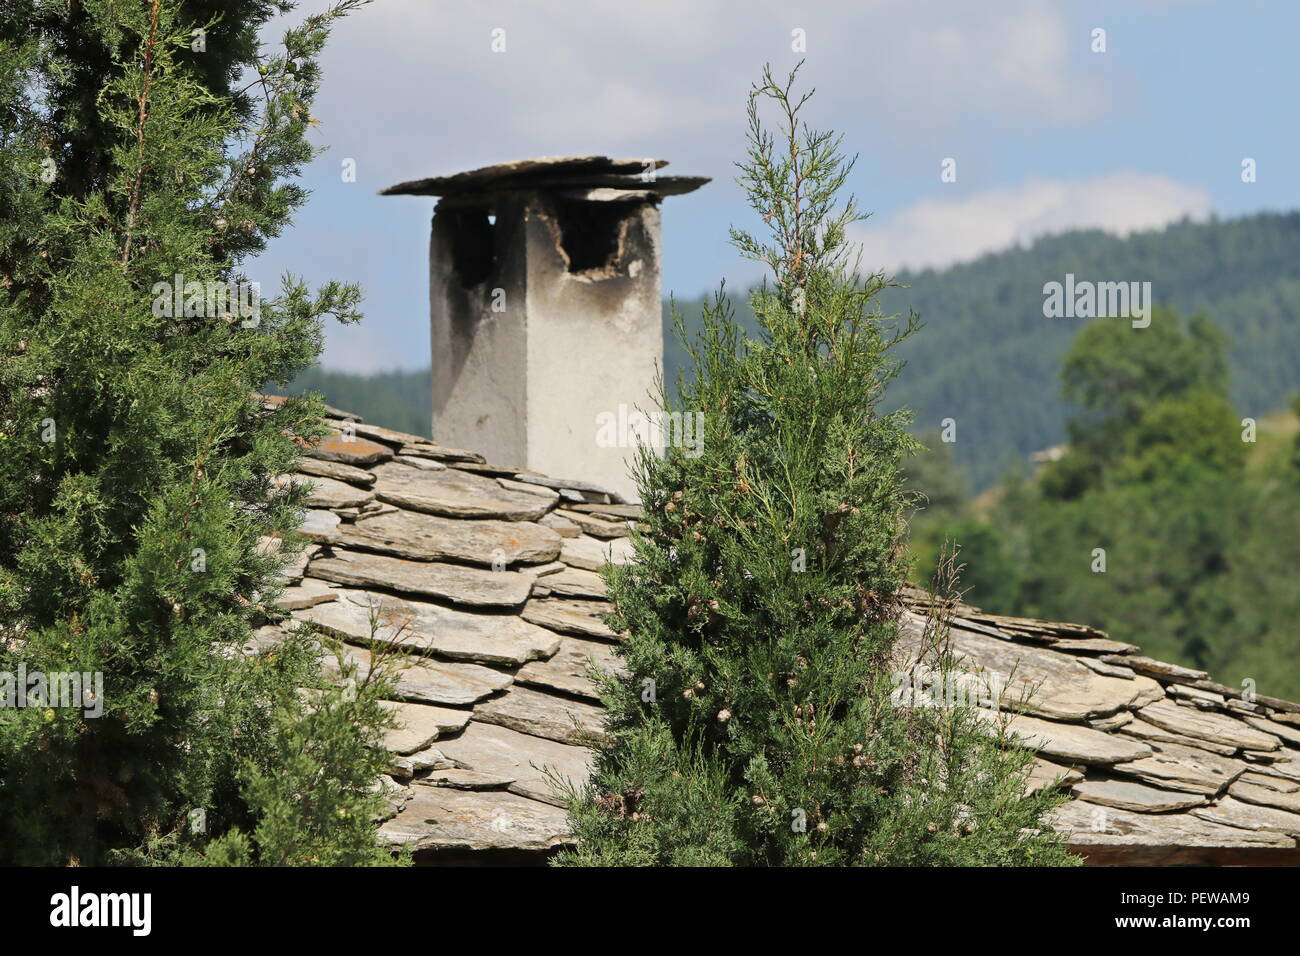 Old chimney on house in Kovachevitsa village Stock Photo